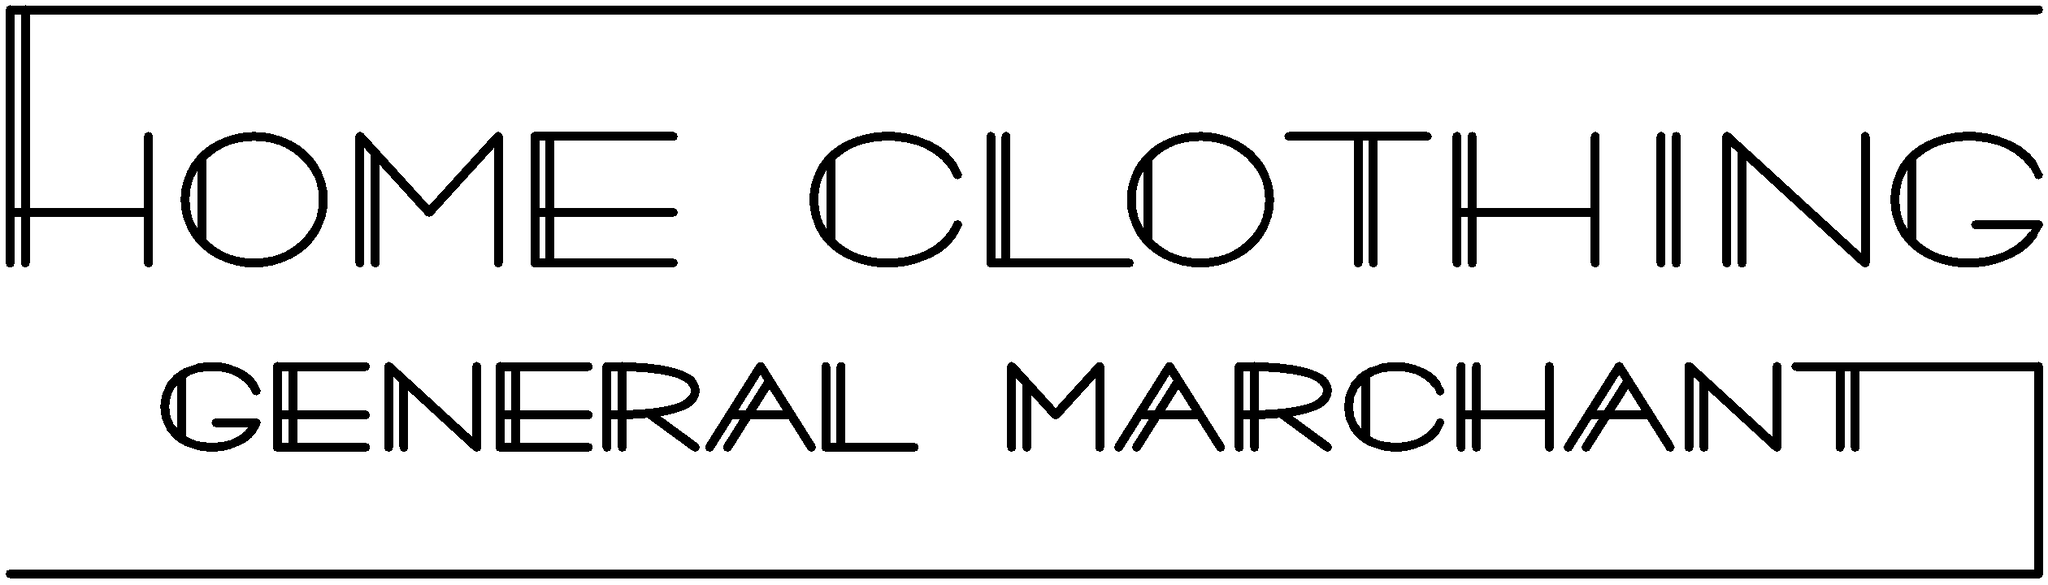 Home Clothing General Merchant